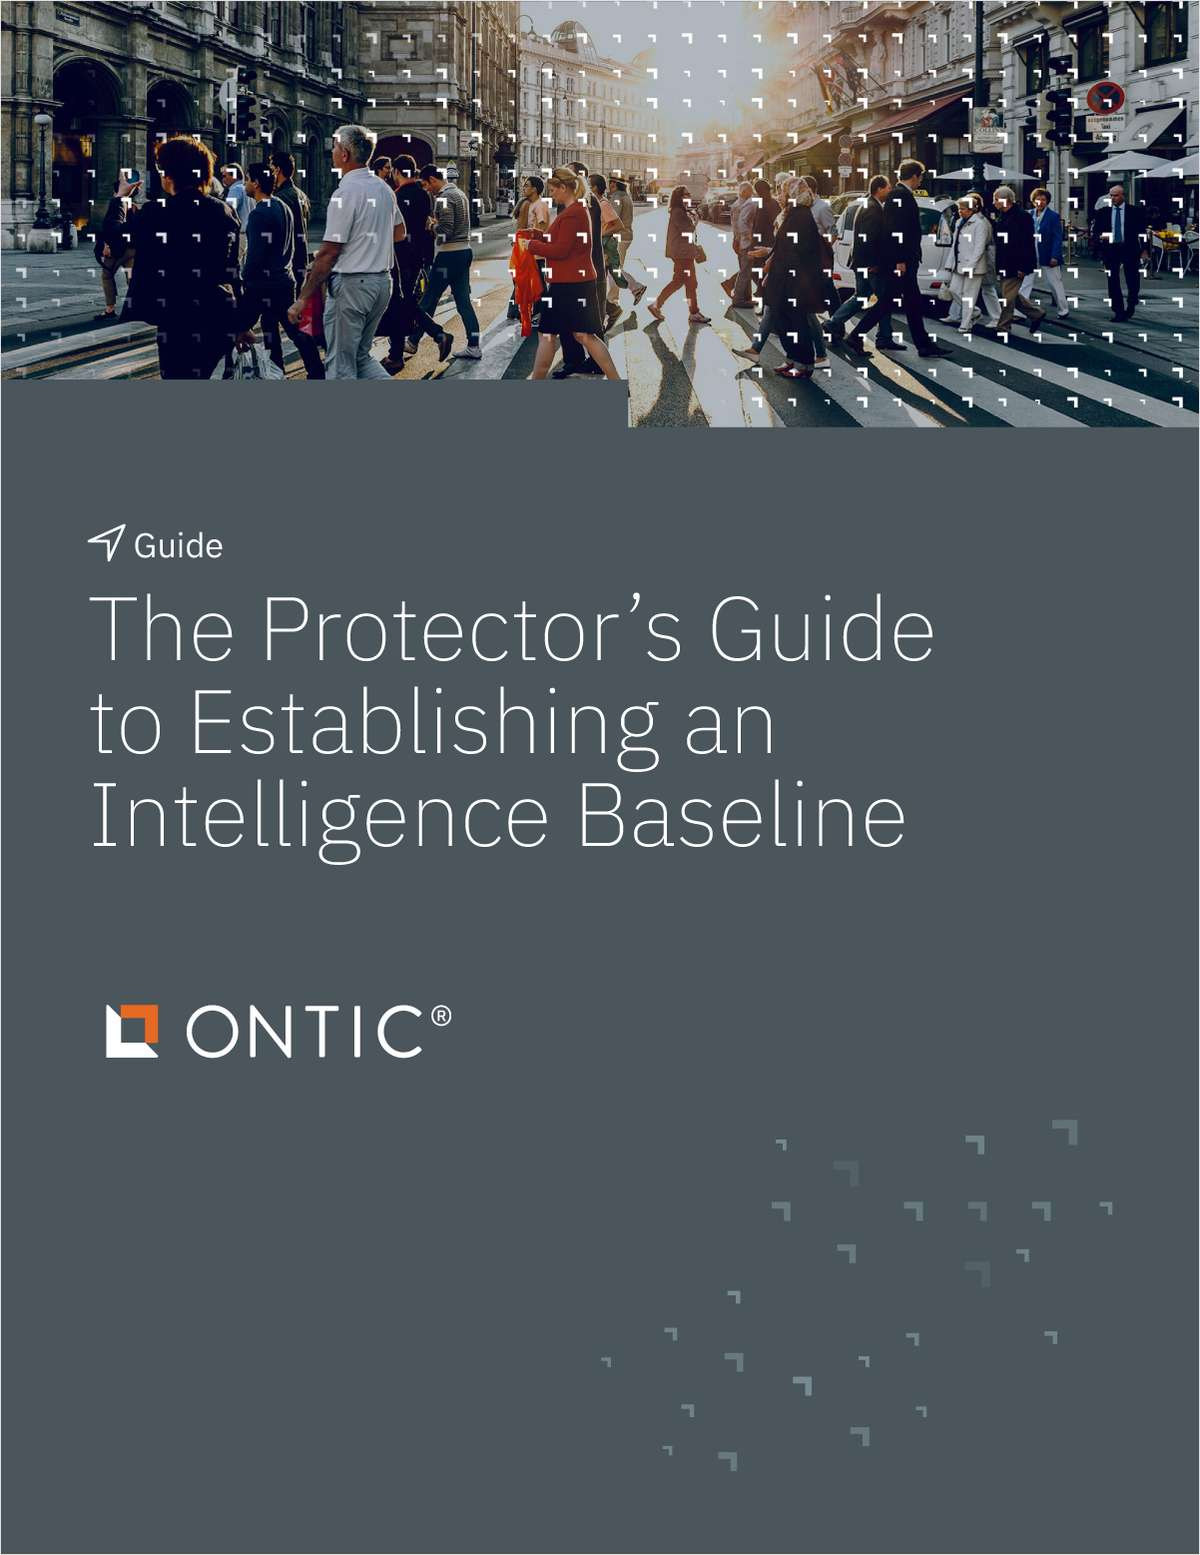 The Protector's Guide to Establishing an Intelligence Baseline